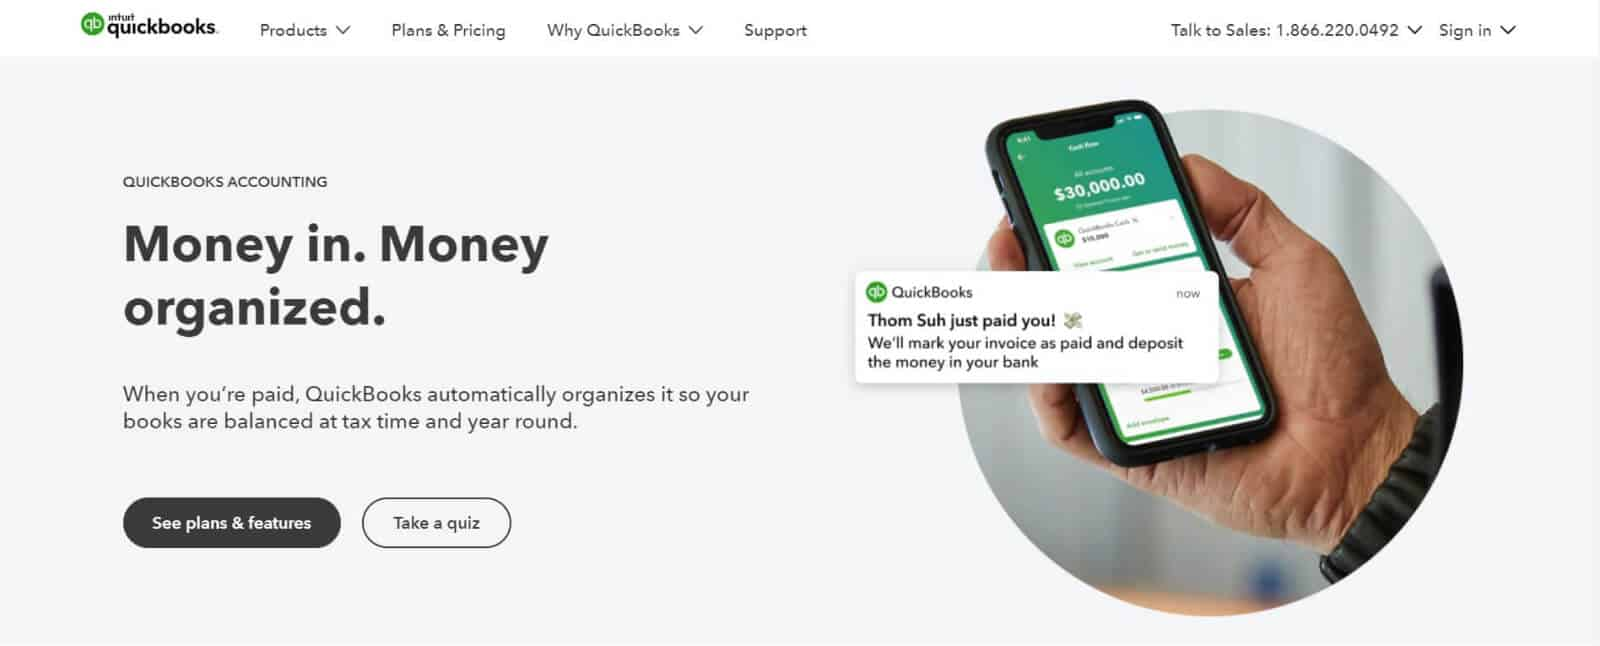 QuickBooks is one of the most popular accounting apps for small businesses